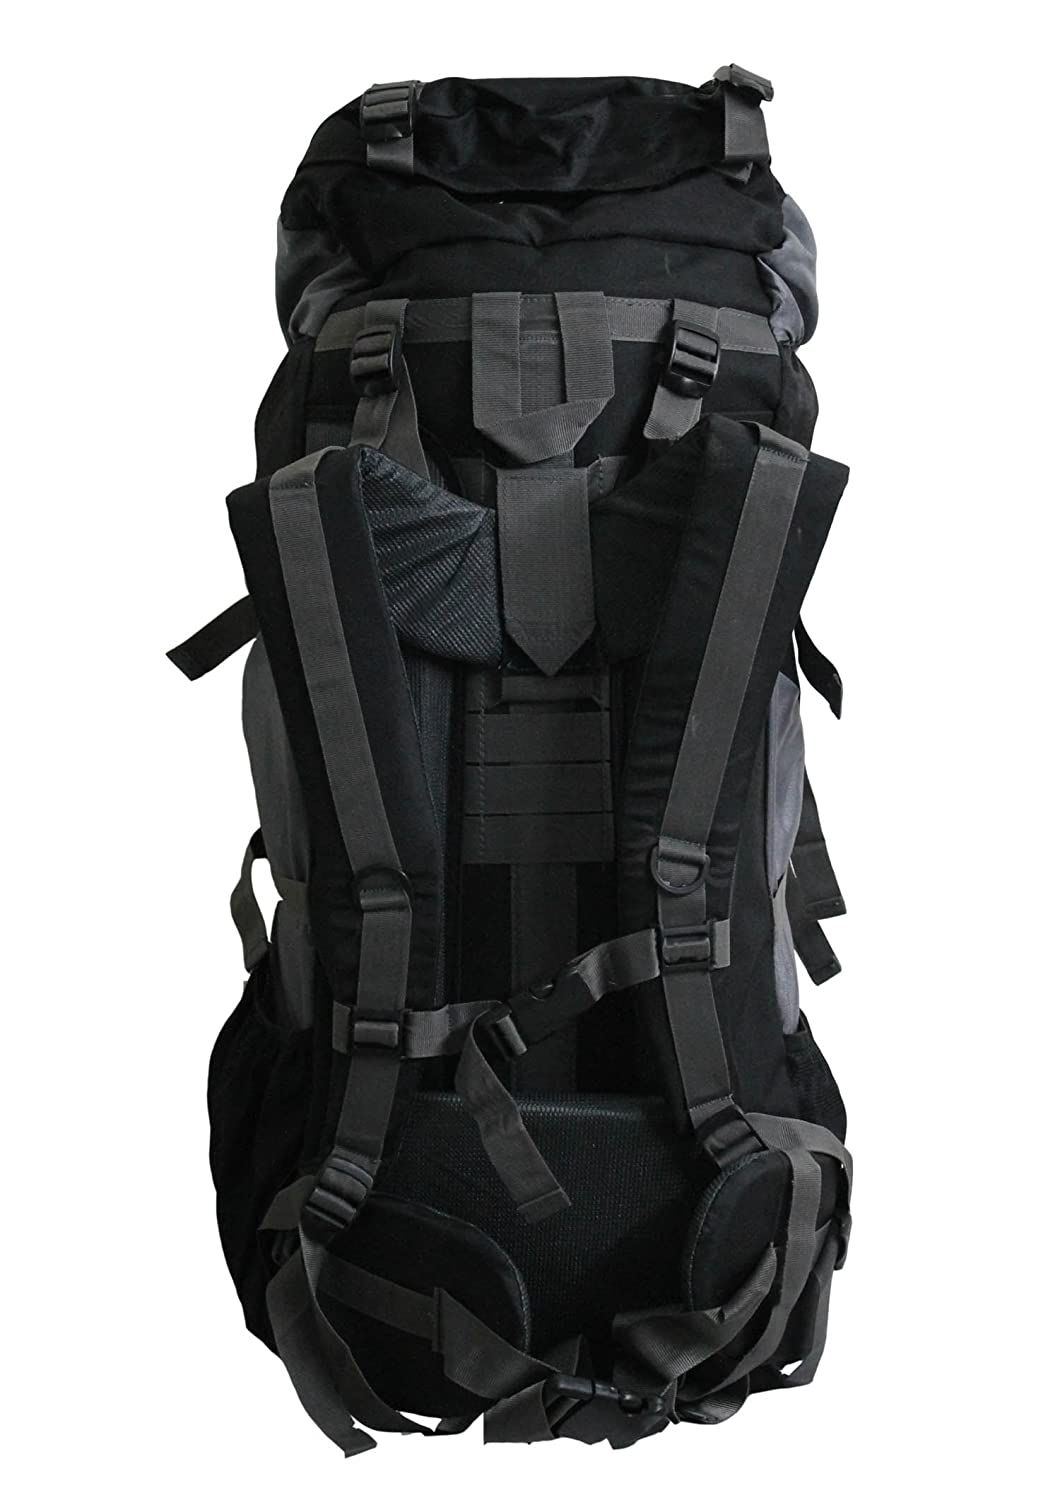 Inlander 70 Ltrs Black Rucksack (A2ZILDC-10009BKBP)  Amazon.in  Bags,  Wallets   Luggage 9146c41ca7